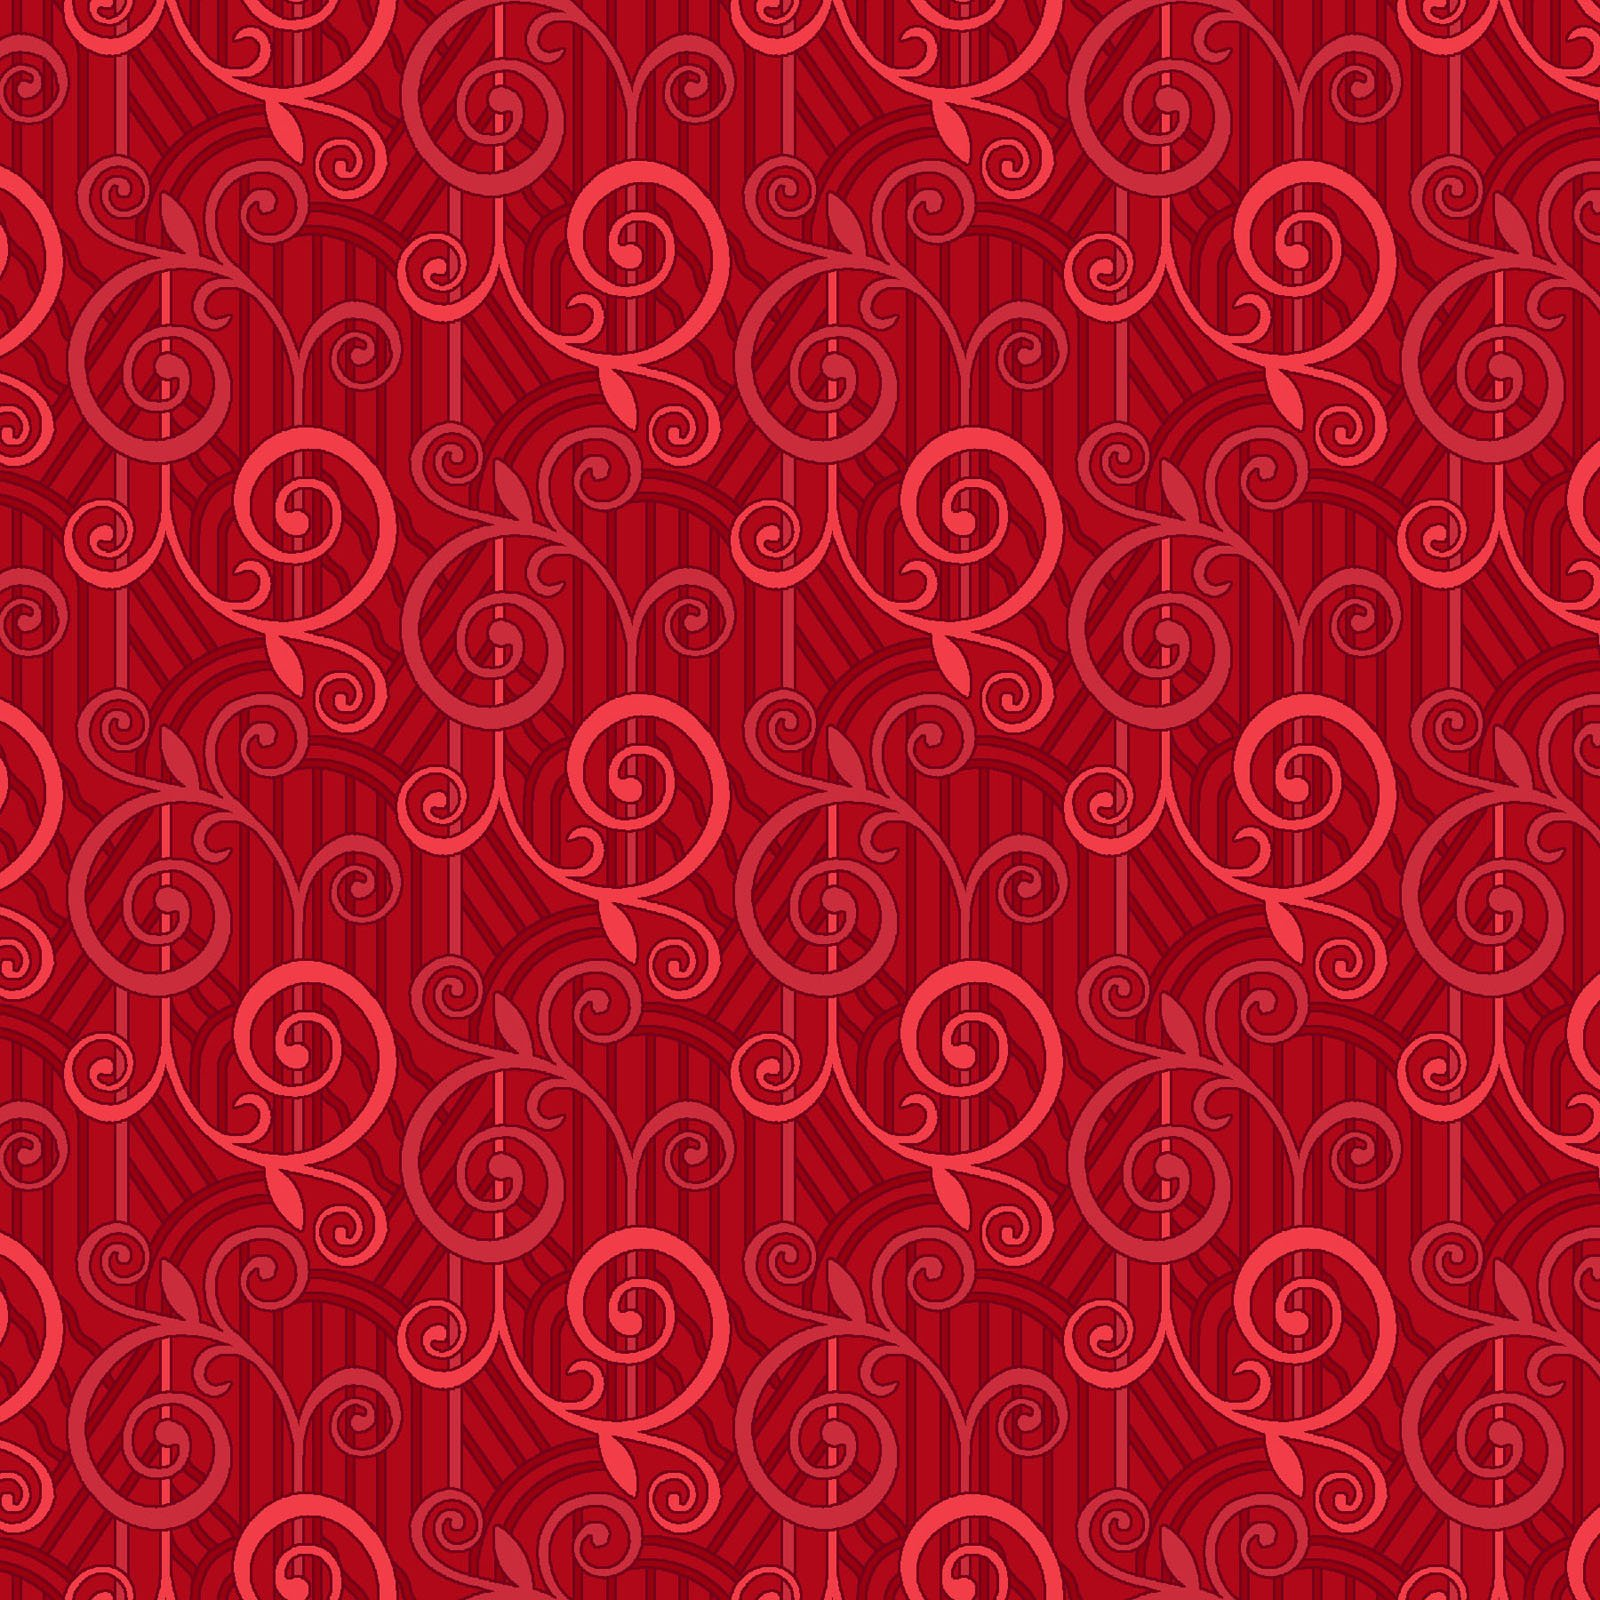 AYAN-4181 R - AYANA BY P&B BOUTIQUE GEOMETRIC RED